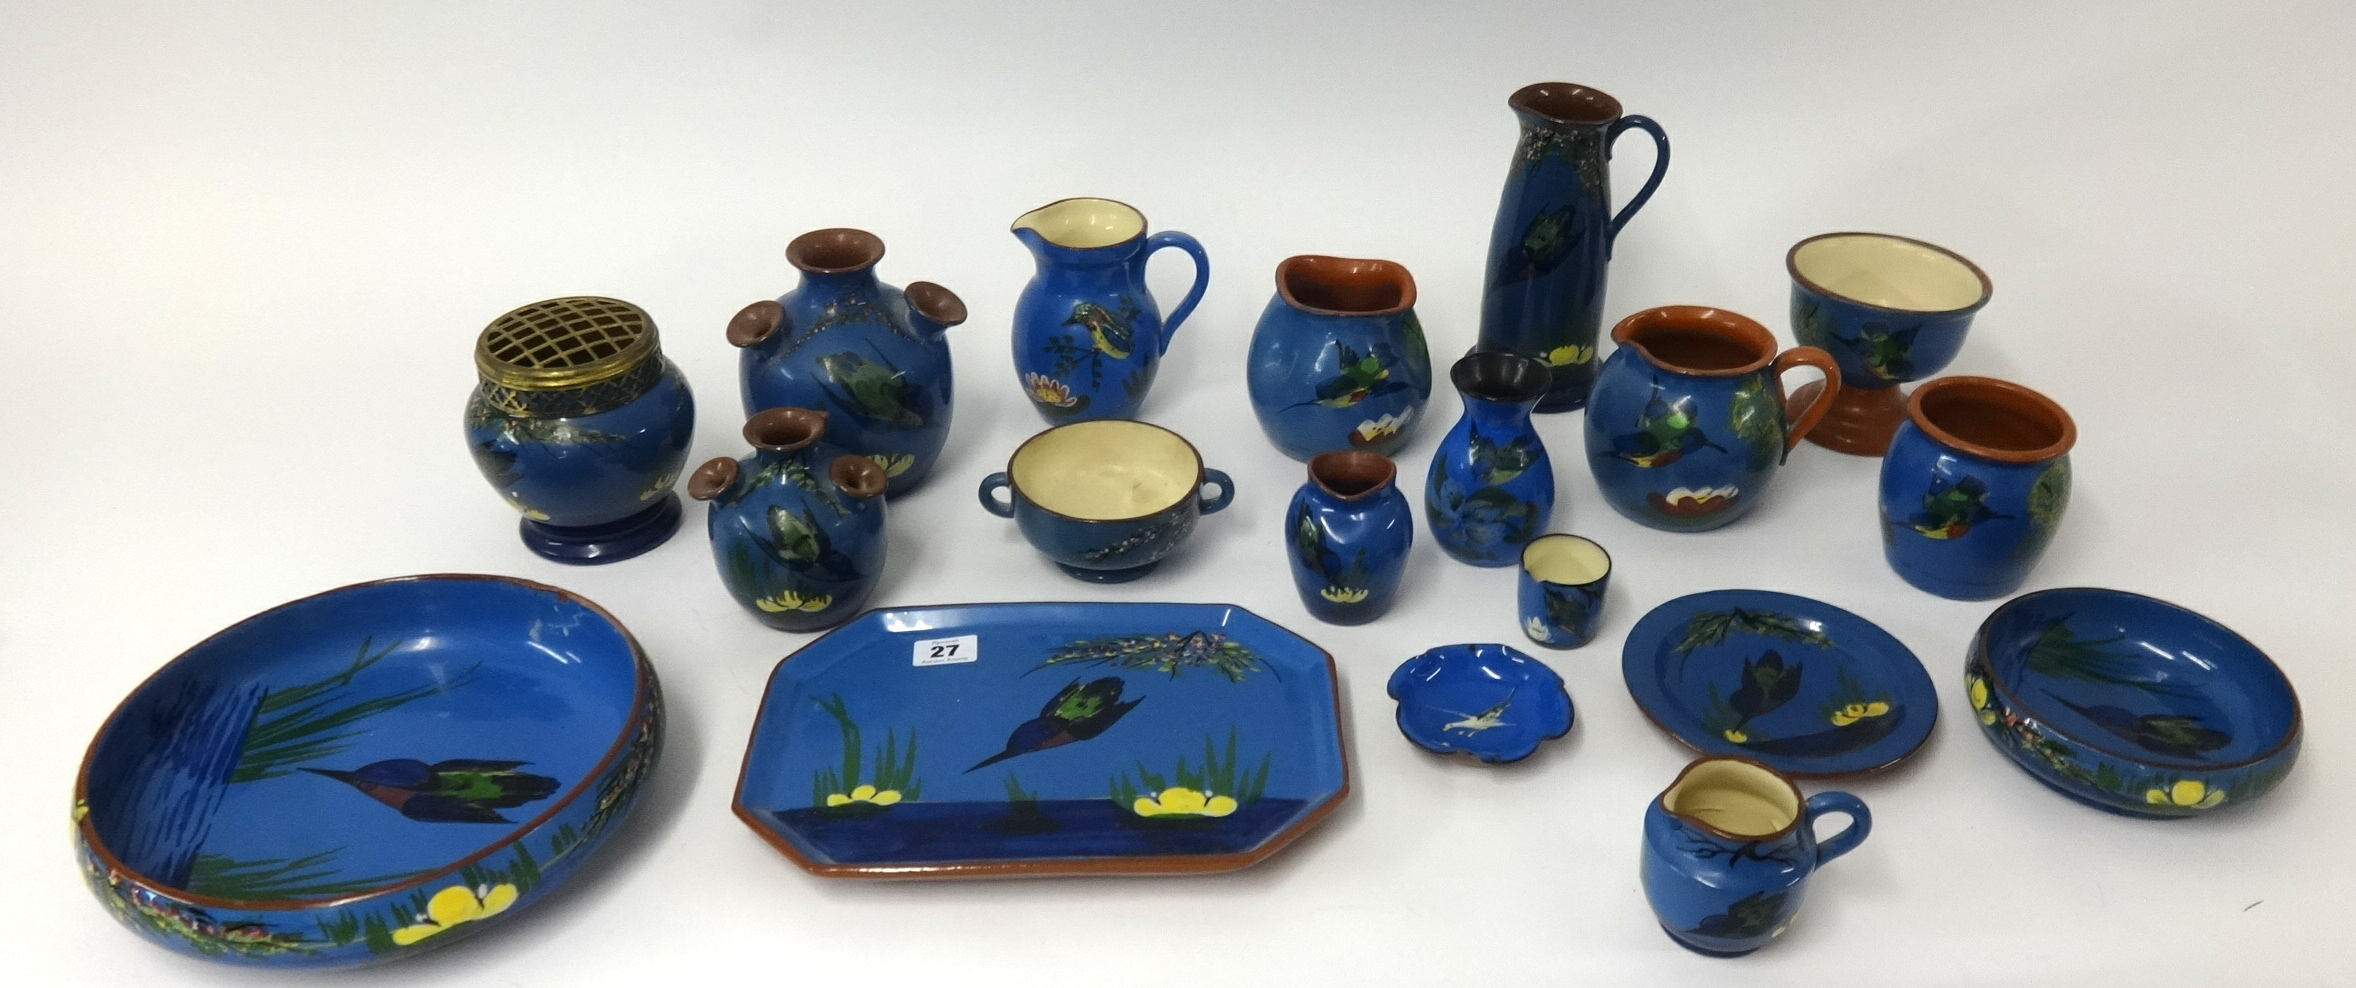 Lot 027 - A collection of Longpark and other Torquay ware.